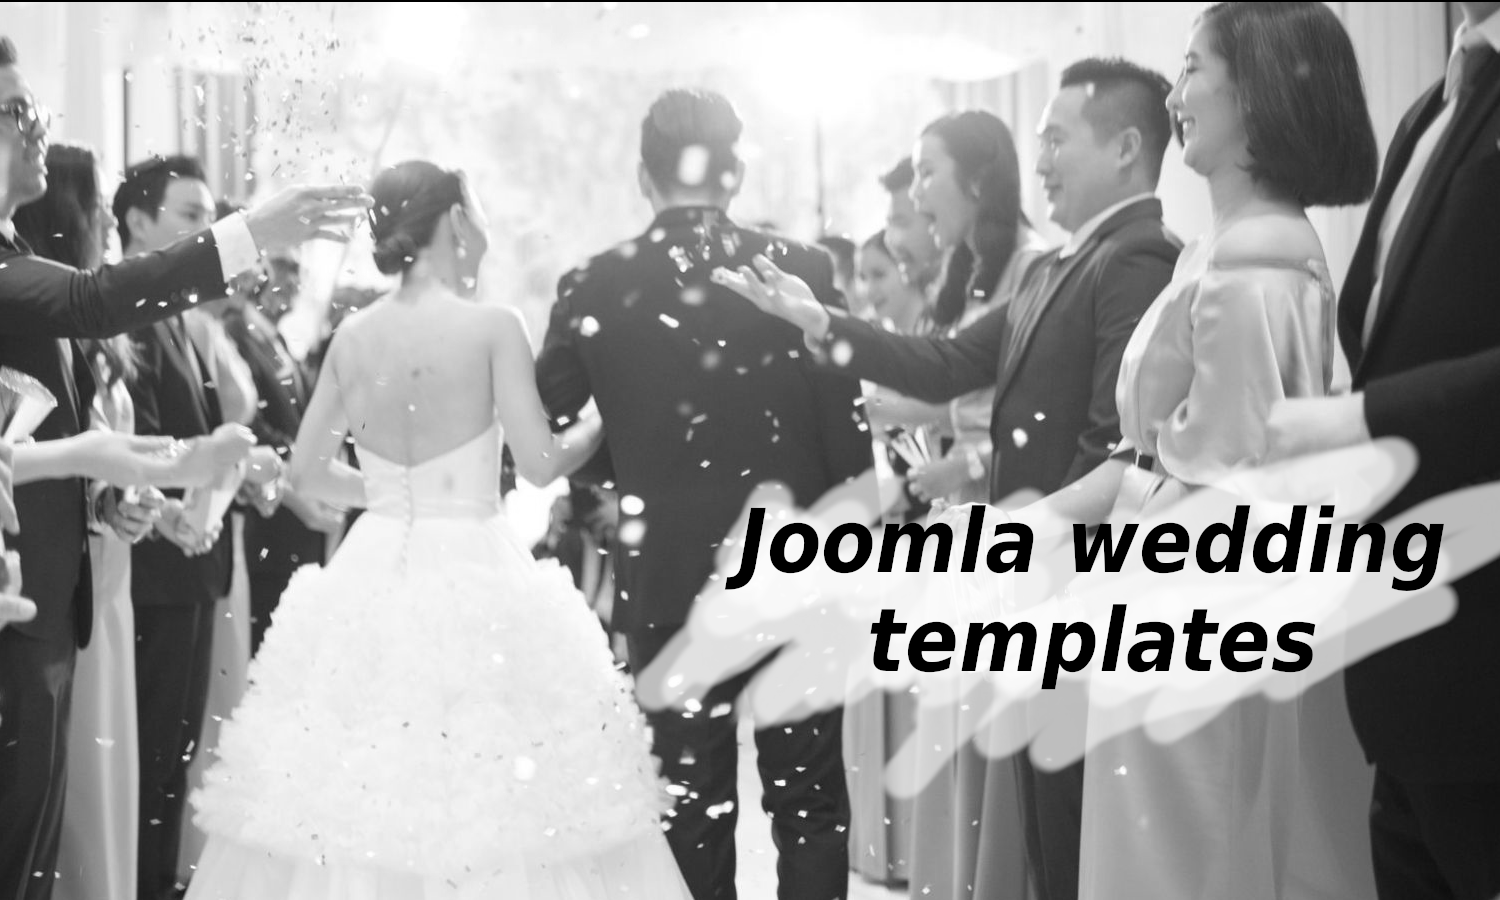 Joomla News: Joomla Wedding Template